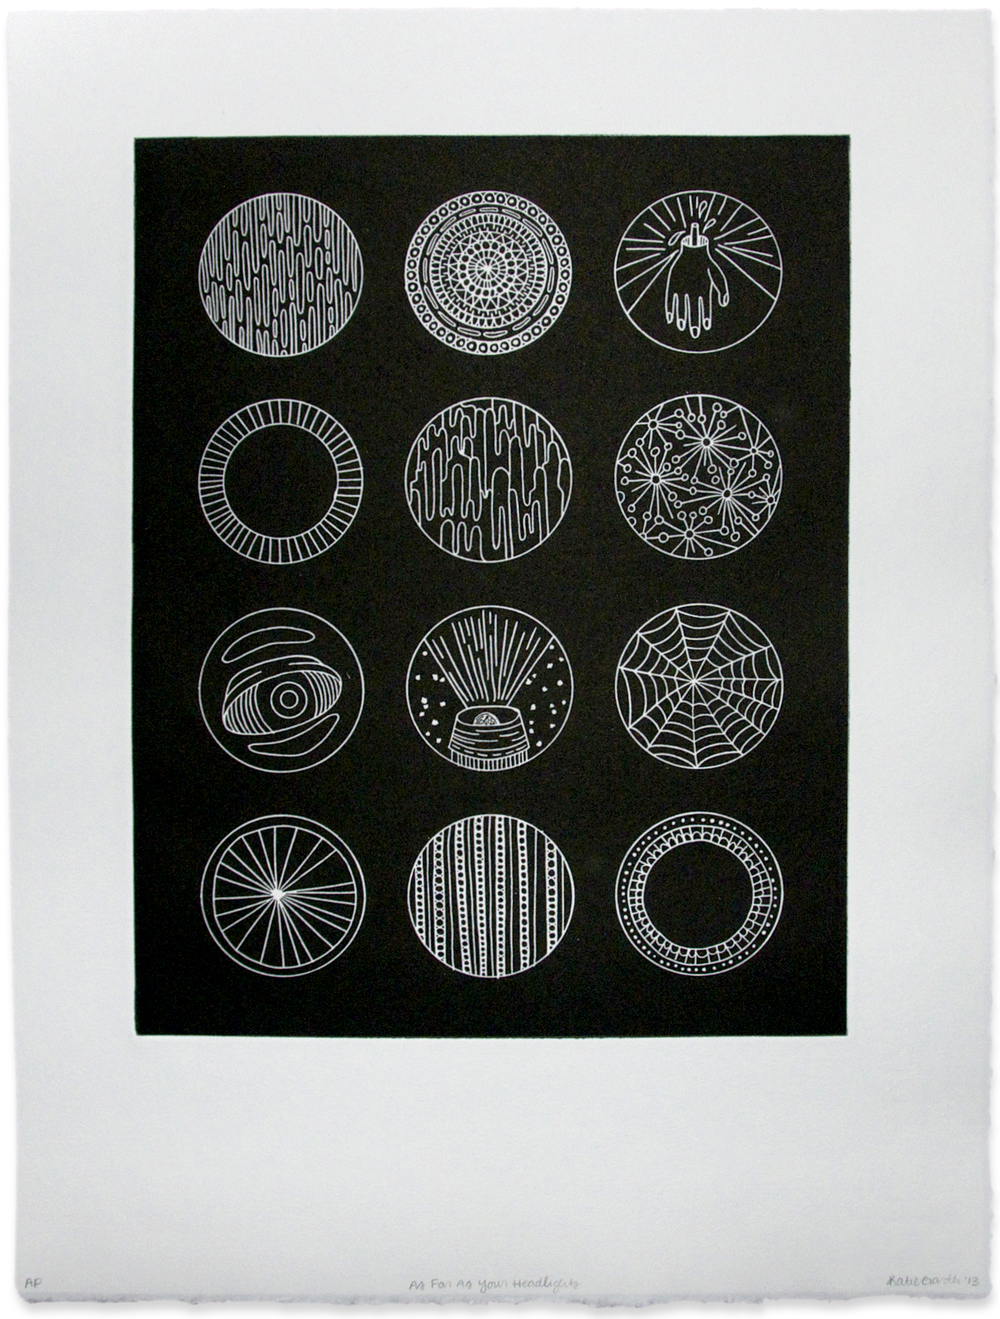 As Far As Your Headlights, relief etching, 20 x 30